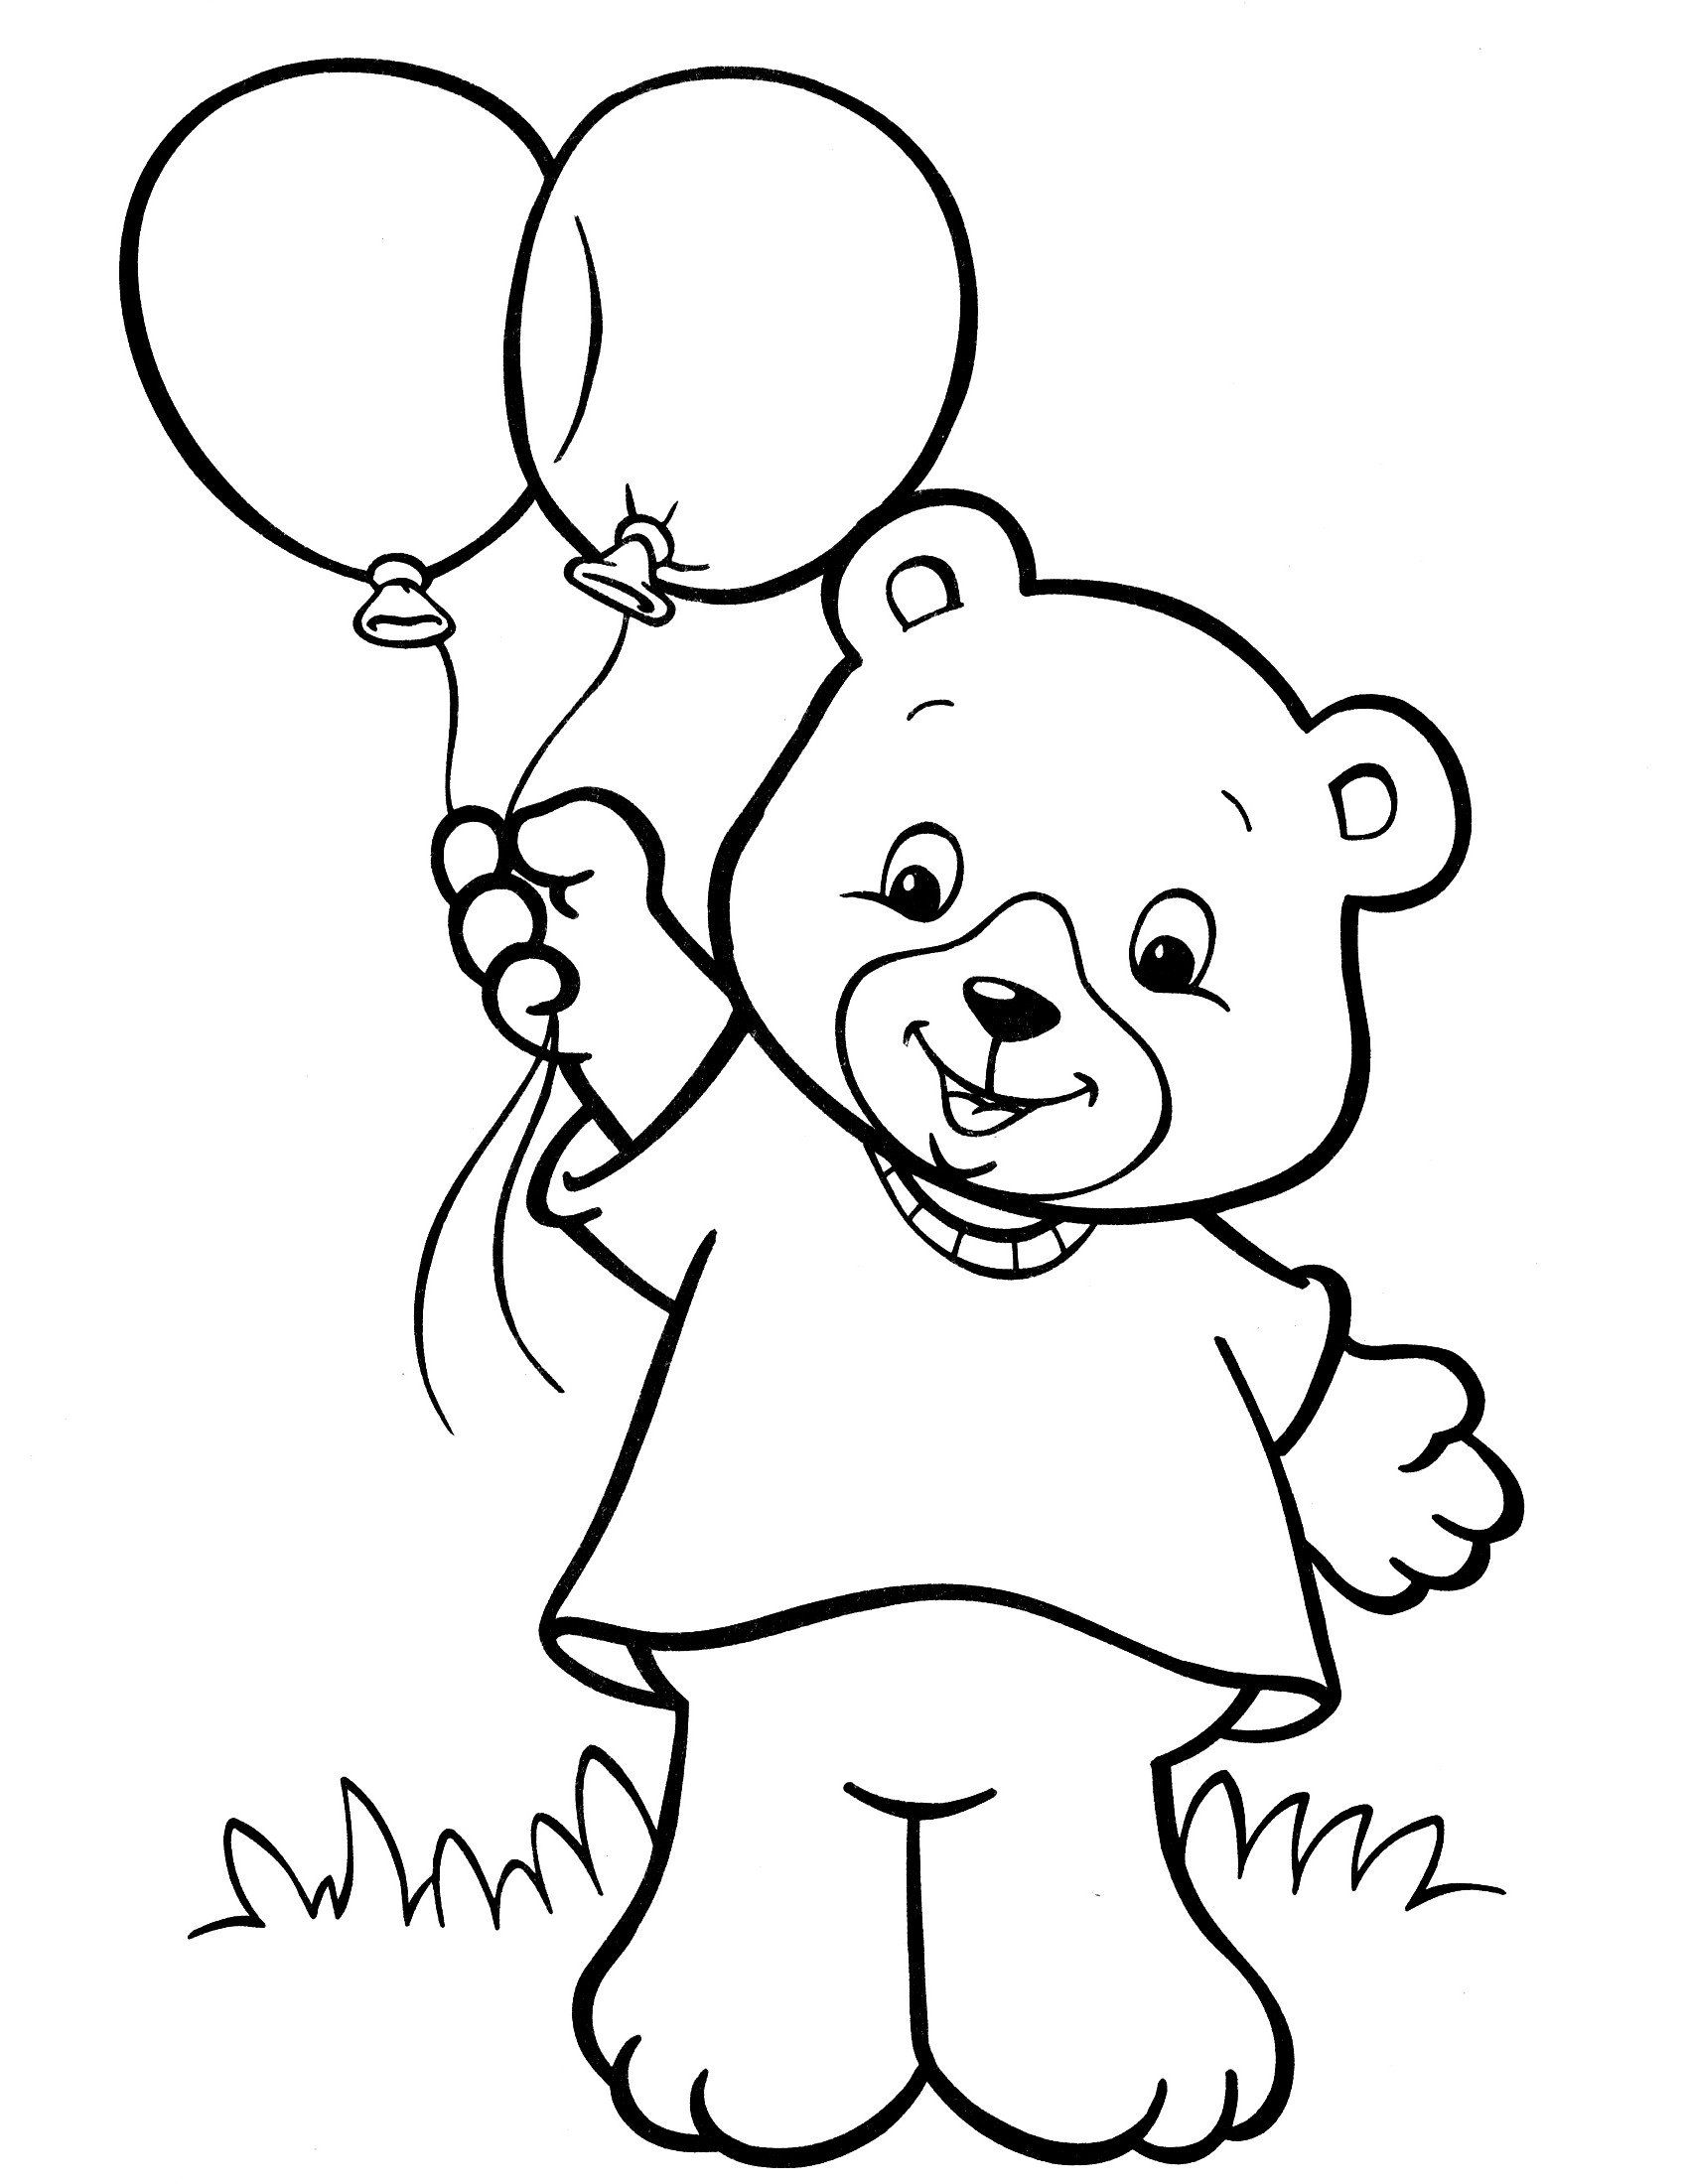 Coloring Books For 2 Year Olds Fresh Coloring Pages